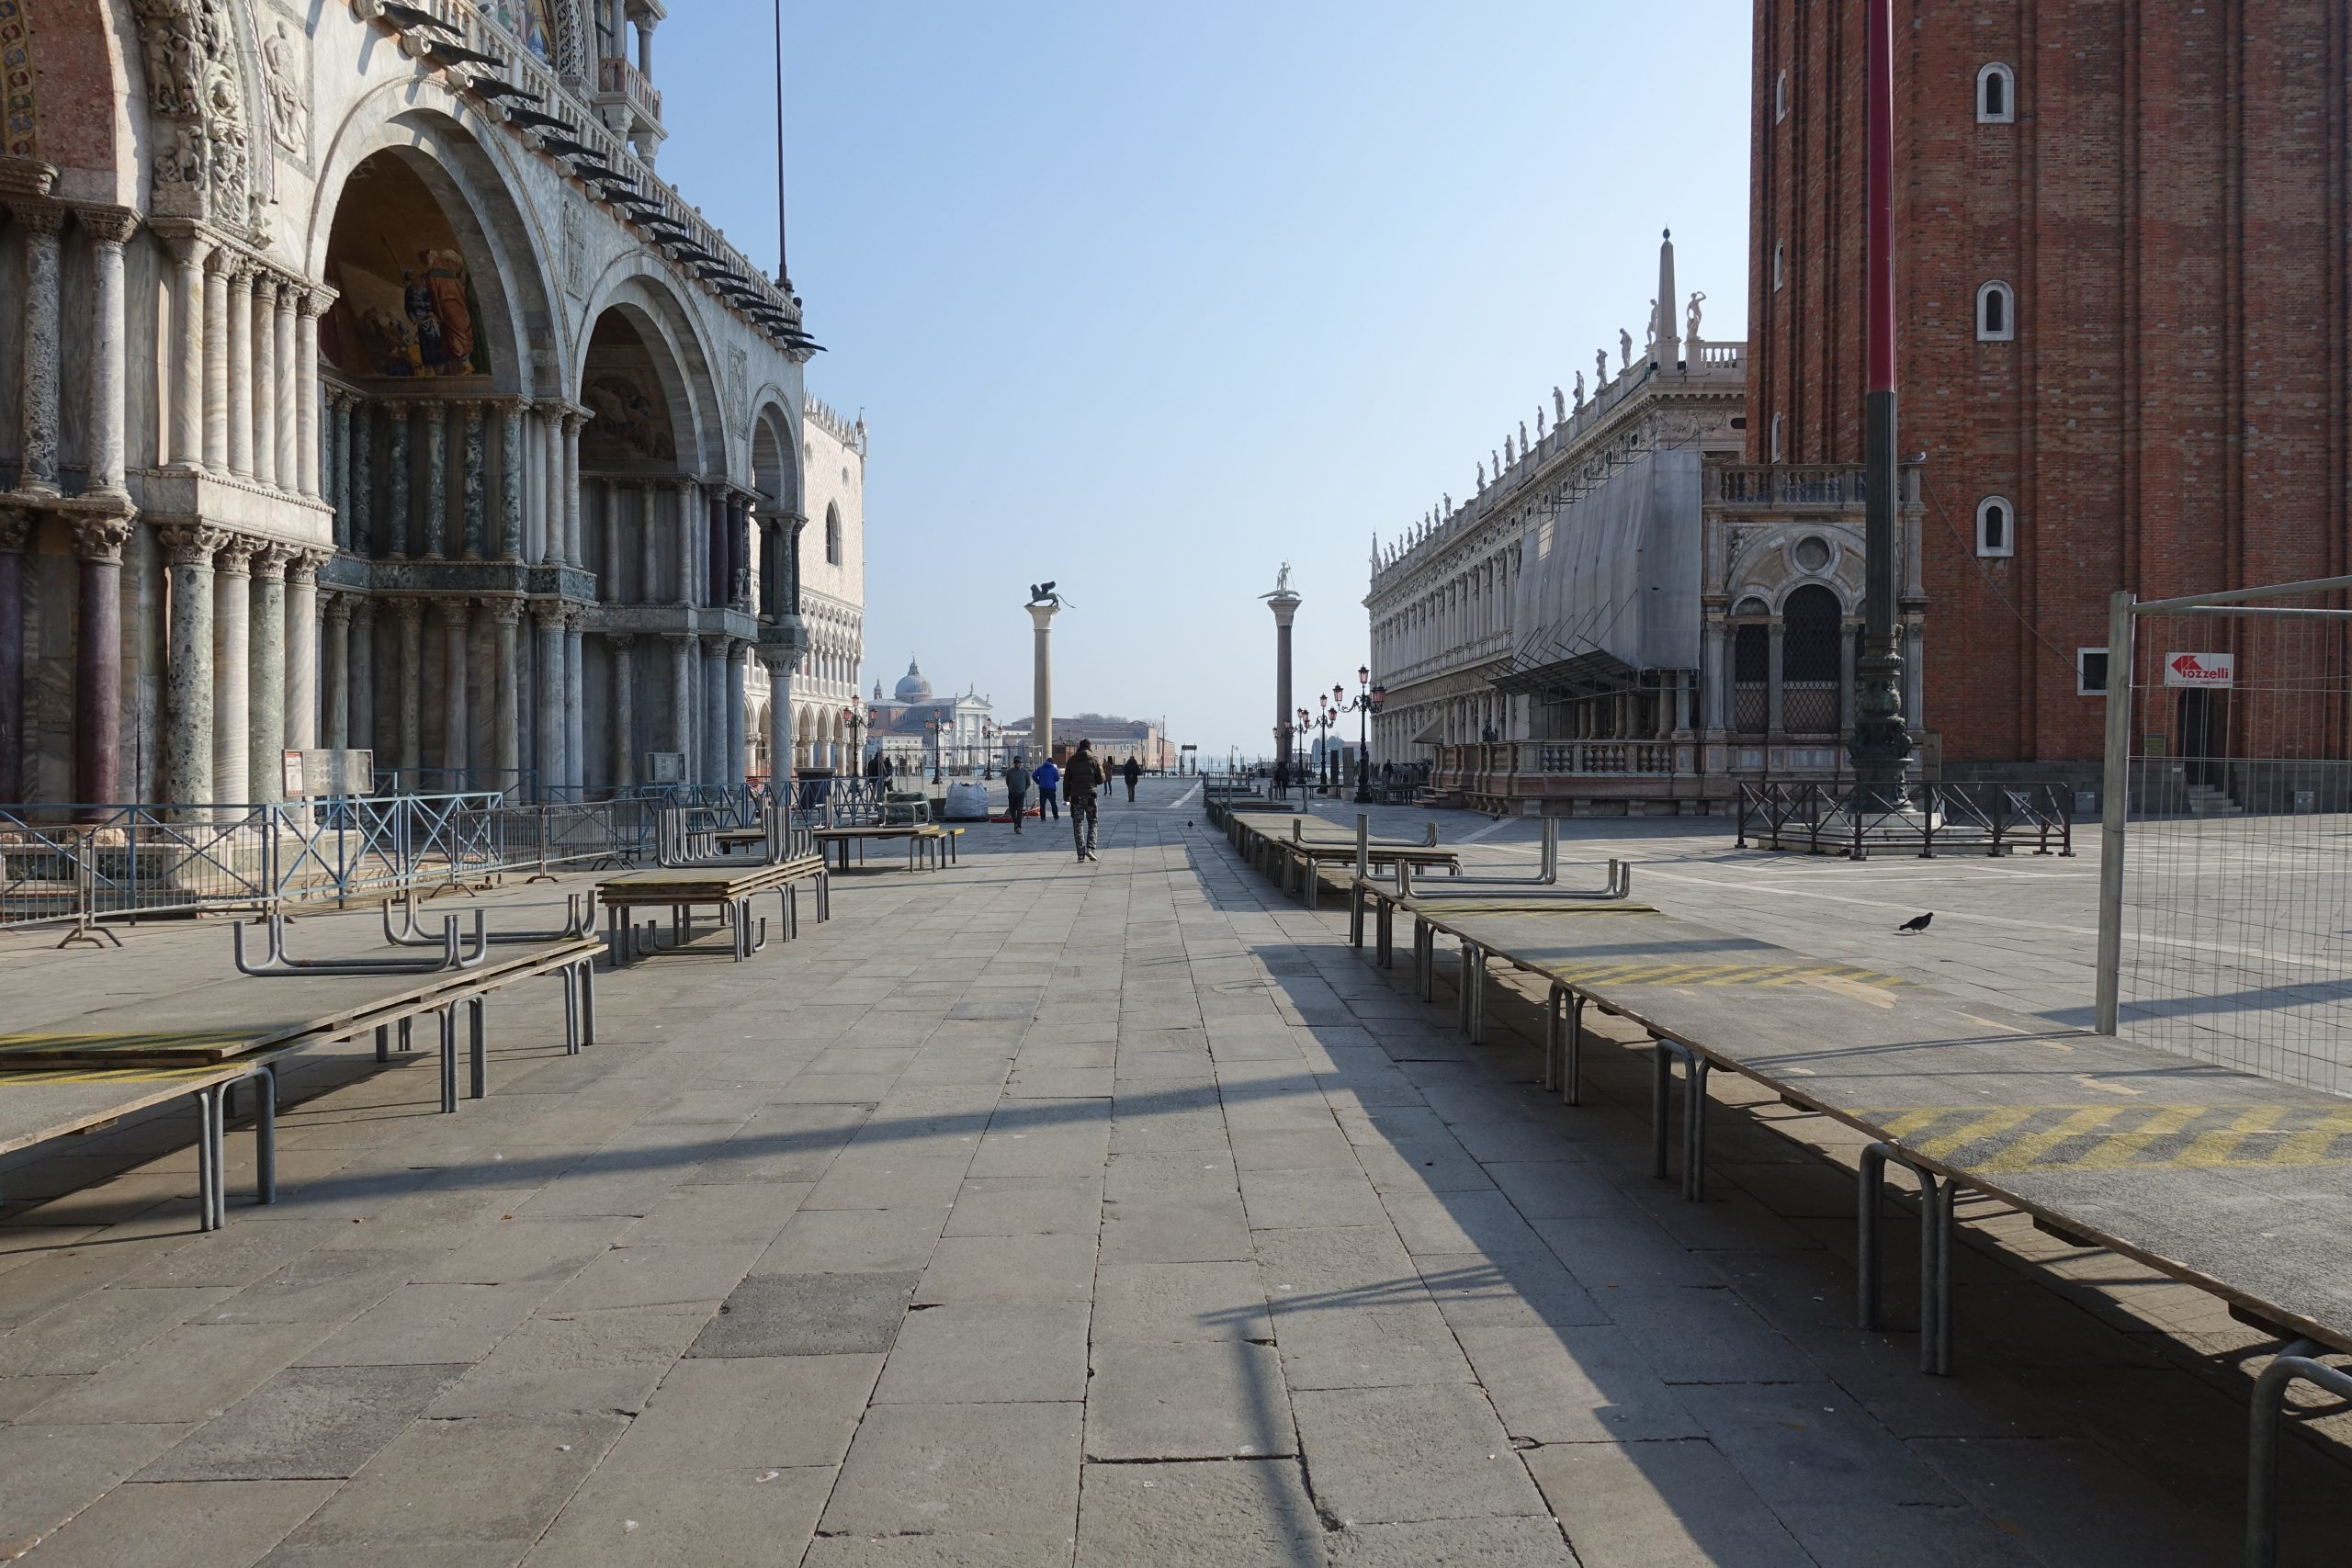 The New York Times 16.05.2020: Virus Lockdown Gives Venice A Shot At Reimagining Tourism